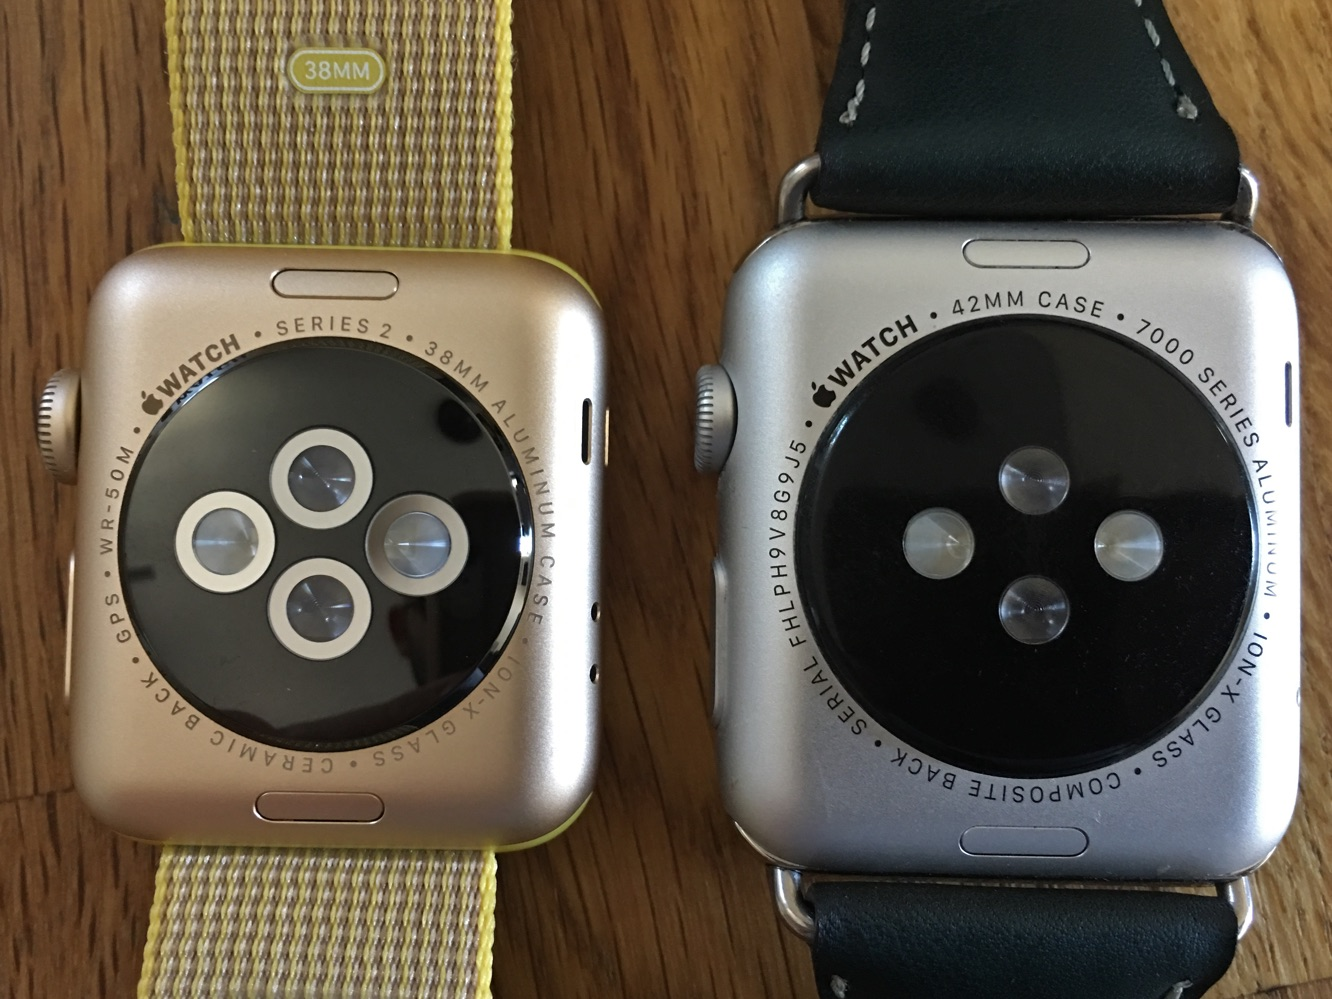 News: Apple working with Stanford, American Well to test Apple Watch heart monitoring